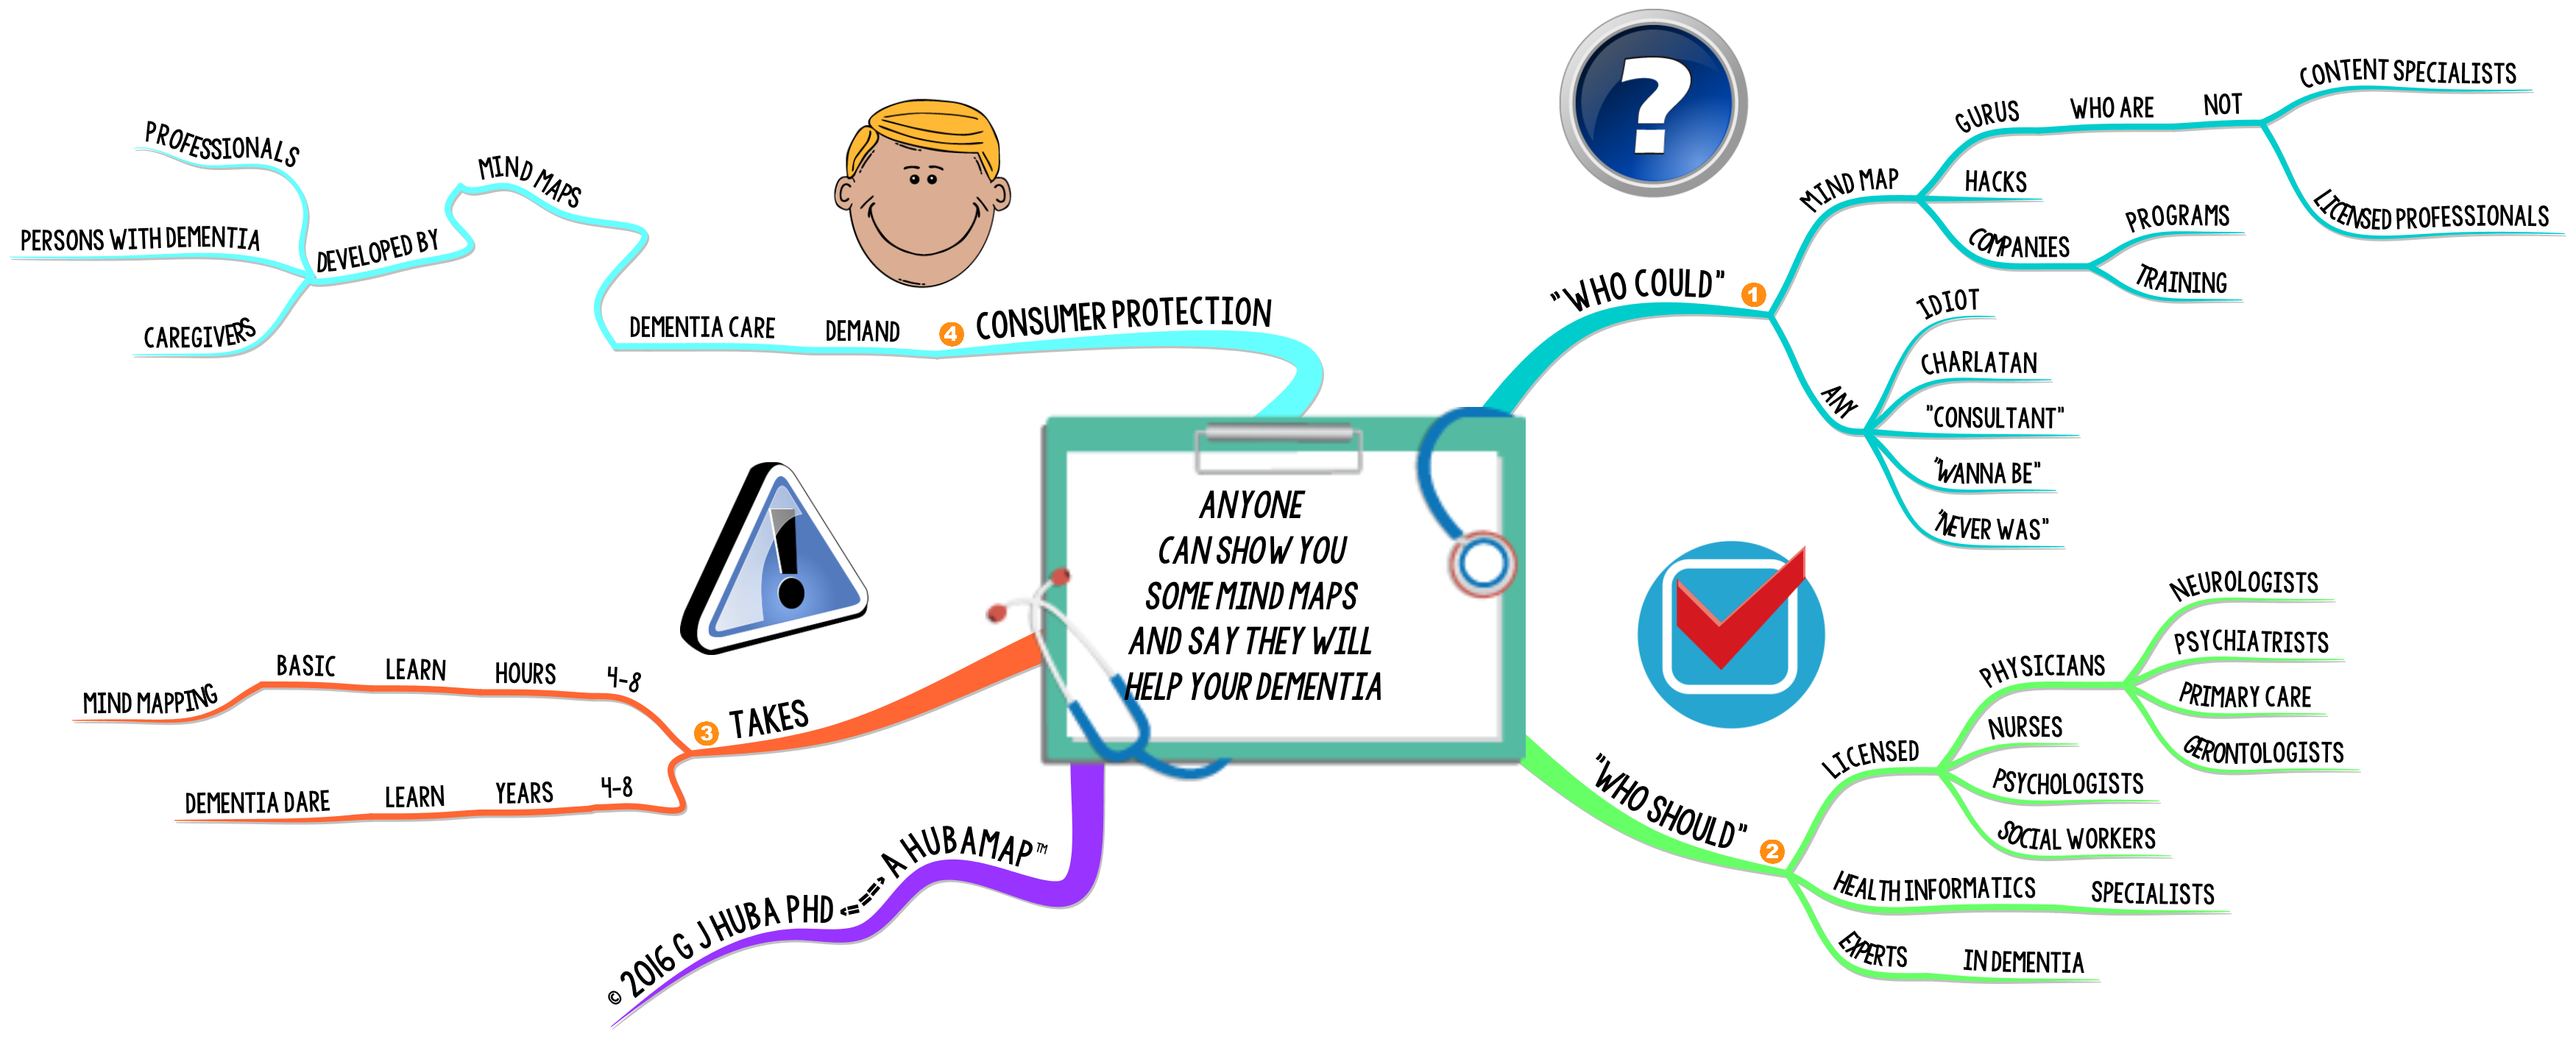 Anyone Can Show You Some Mind Maps and Say They Will Help Your Dementia